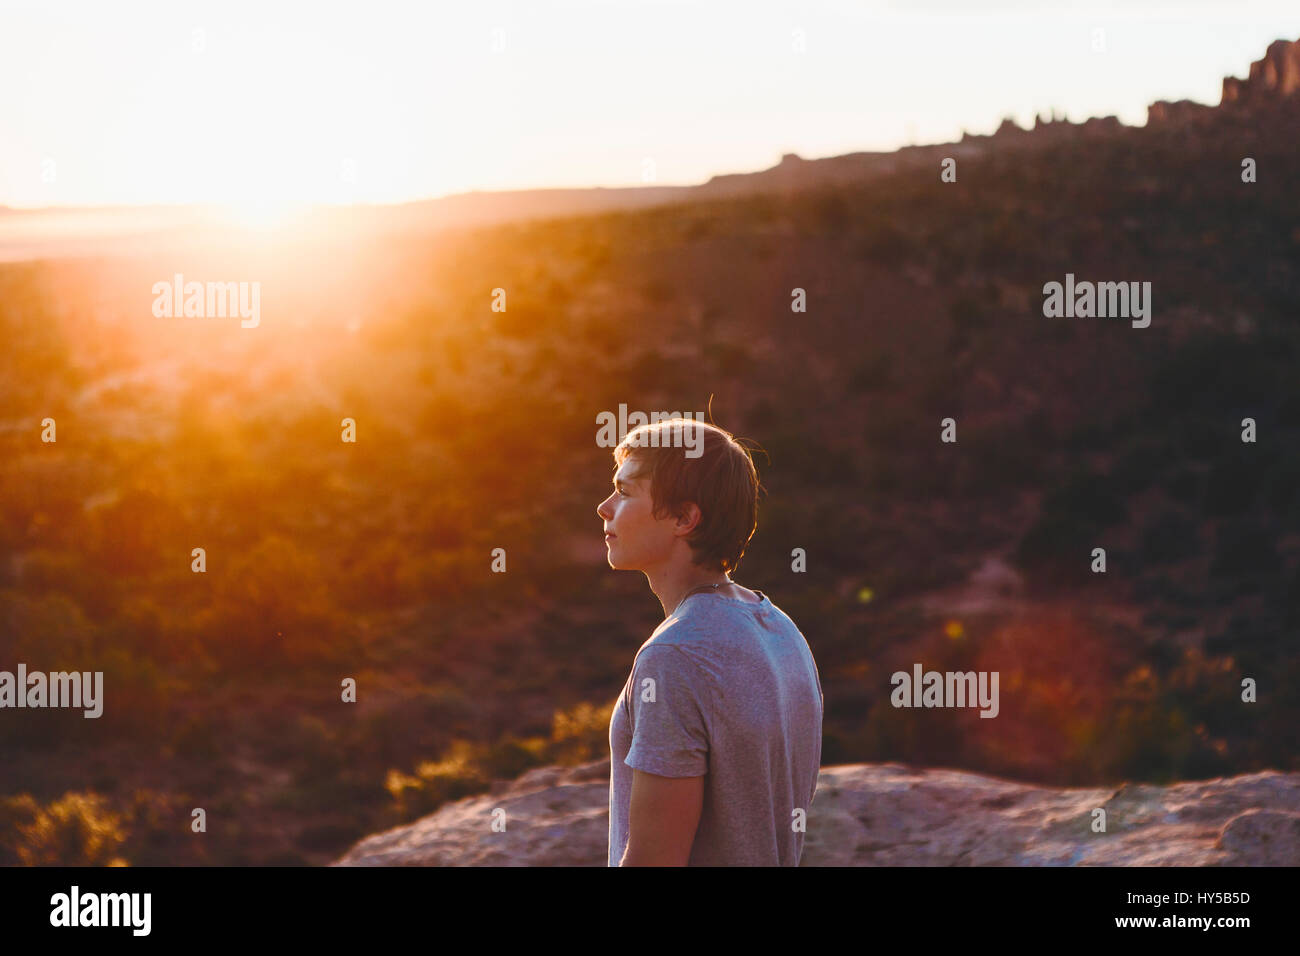 USA, Utah, Moab, Man looking at view in Arches National Park - Stock Image